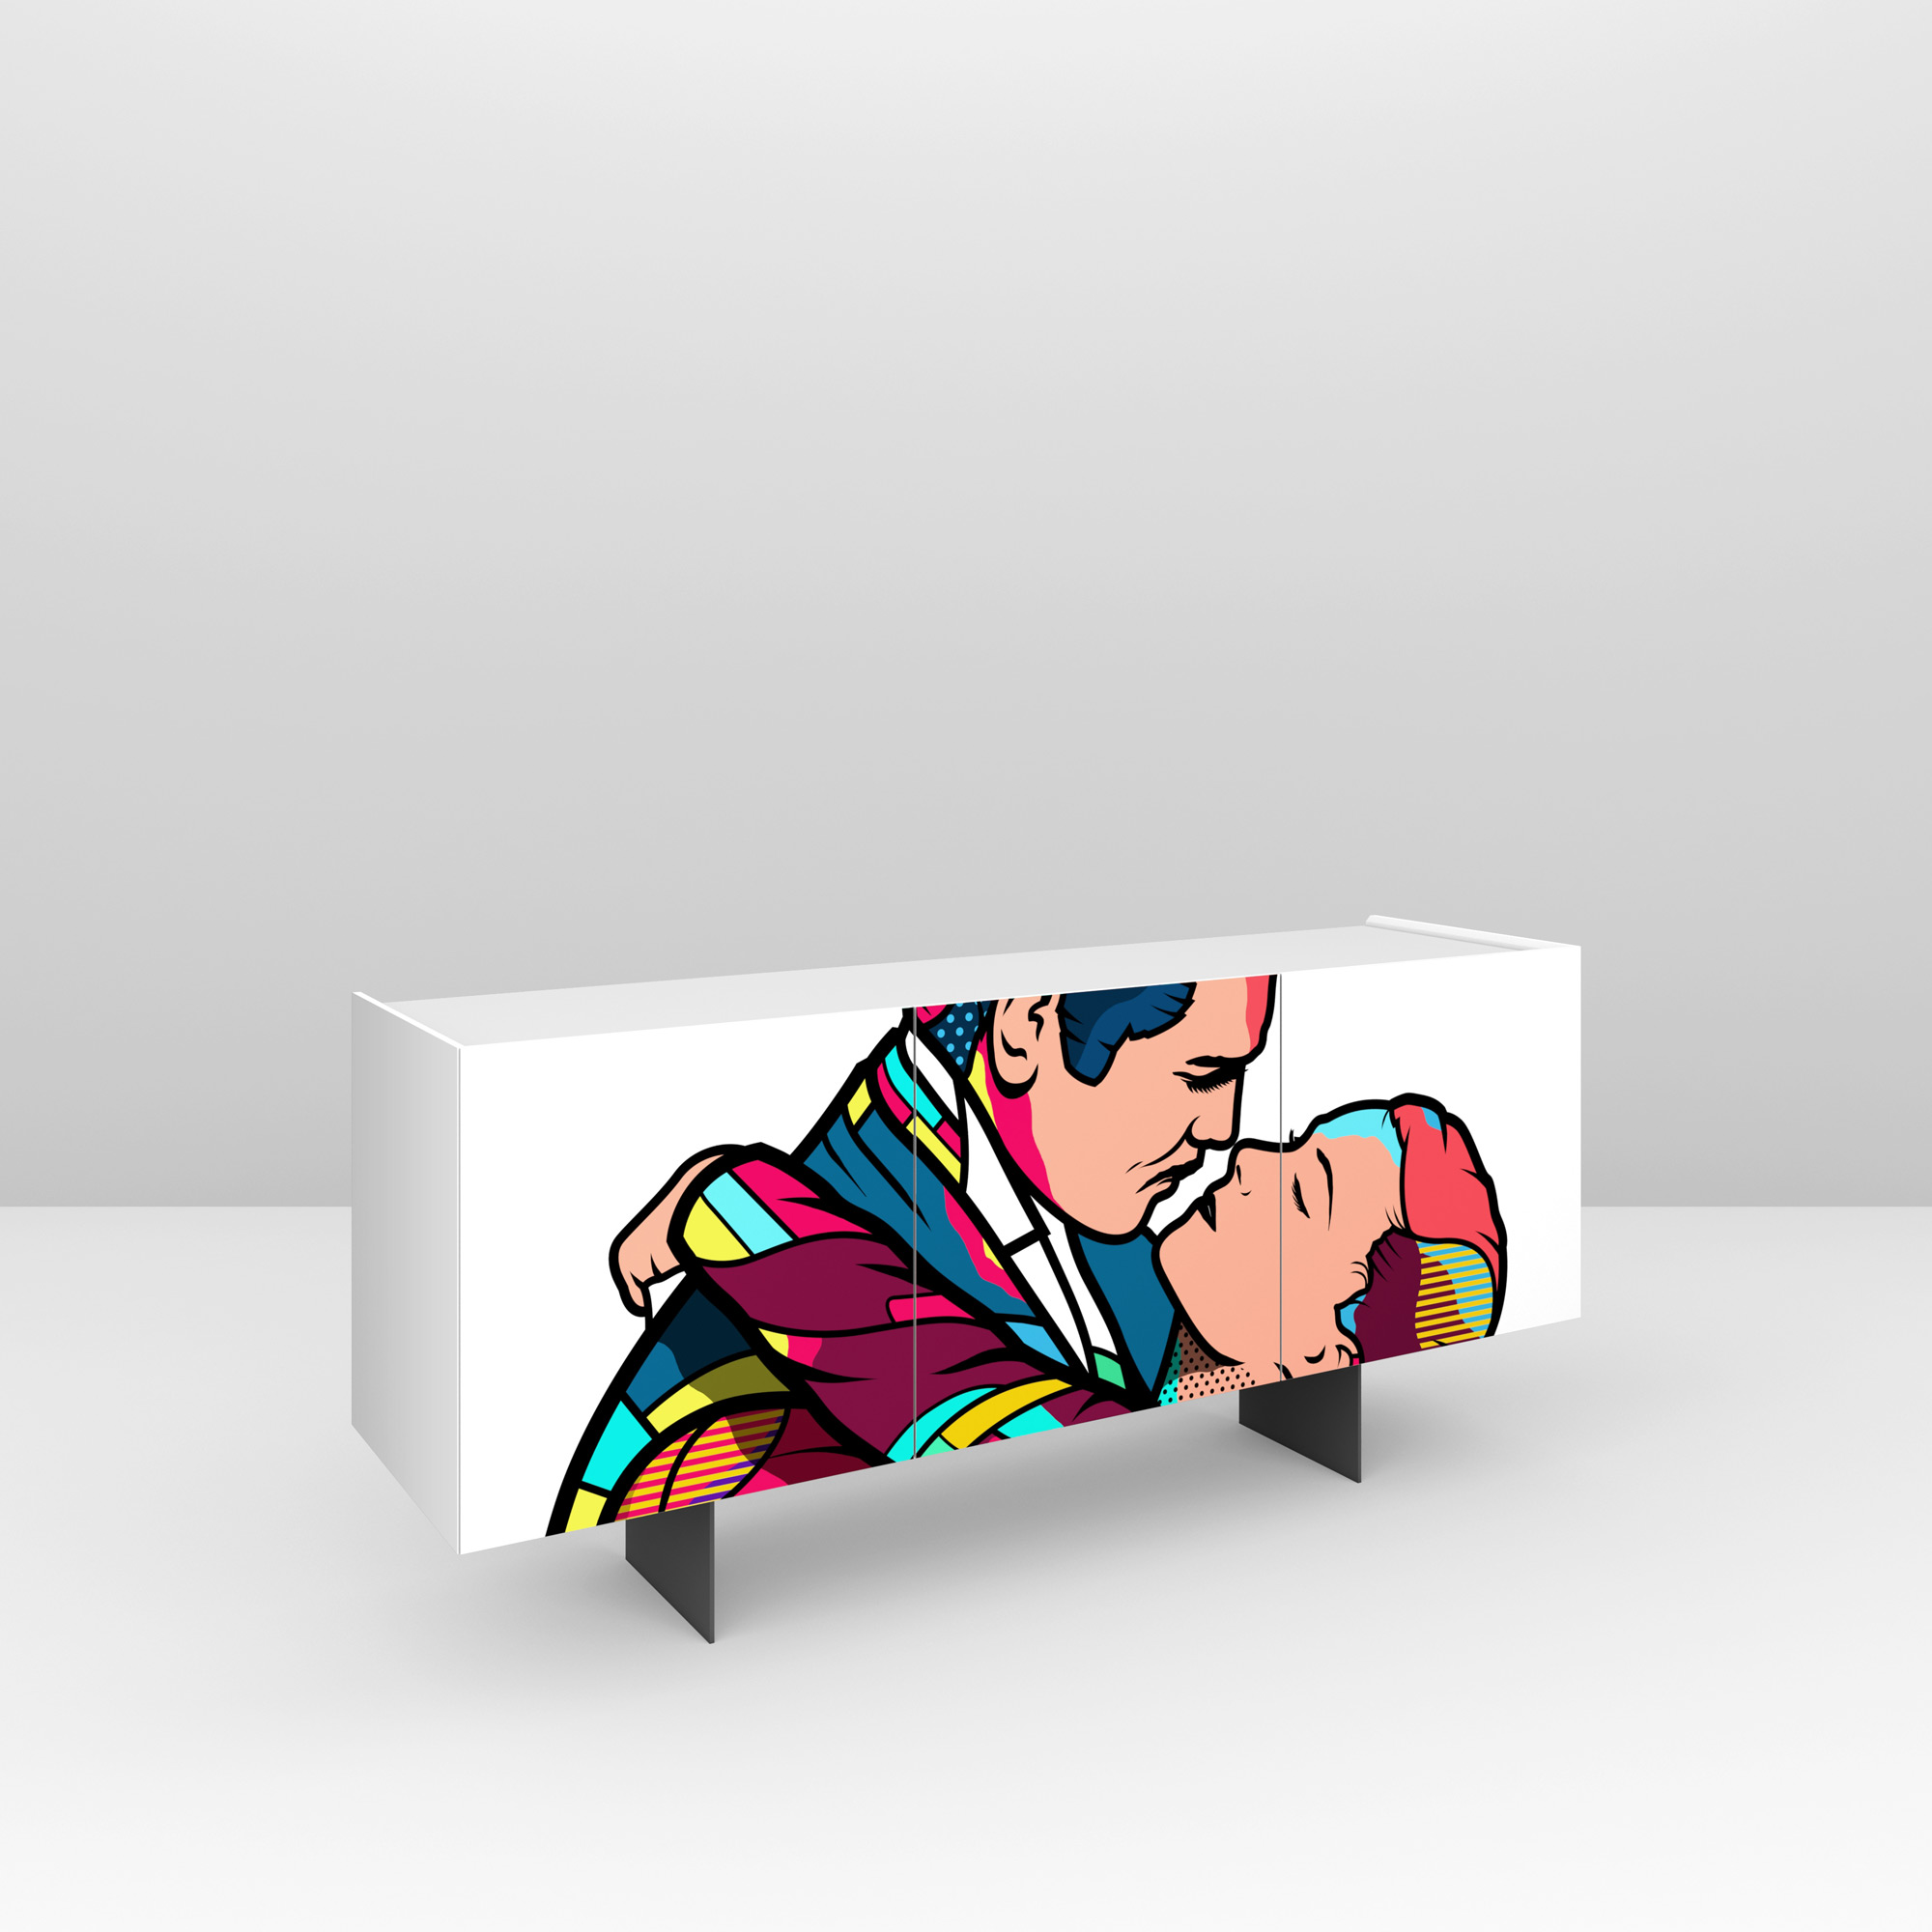 Pictoom Furniture Art Marogna Graphic Illustrator Furnishings Van Orton